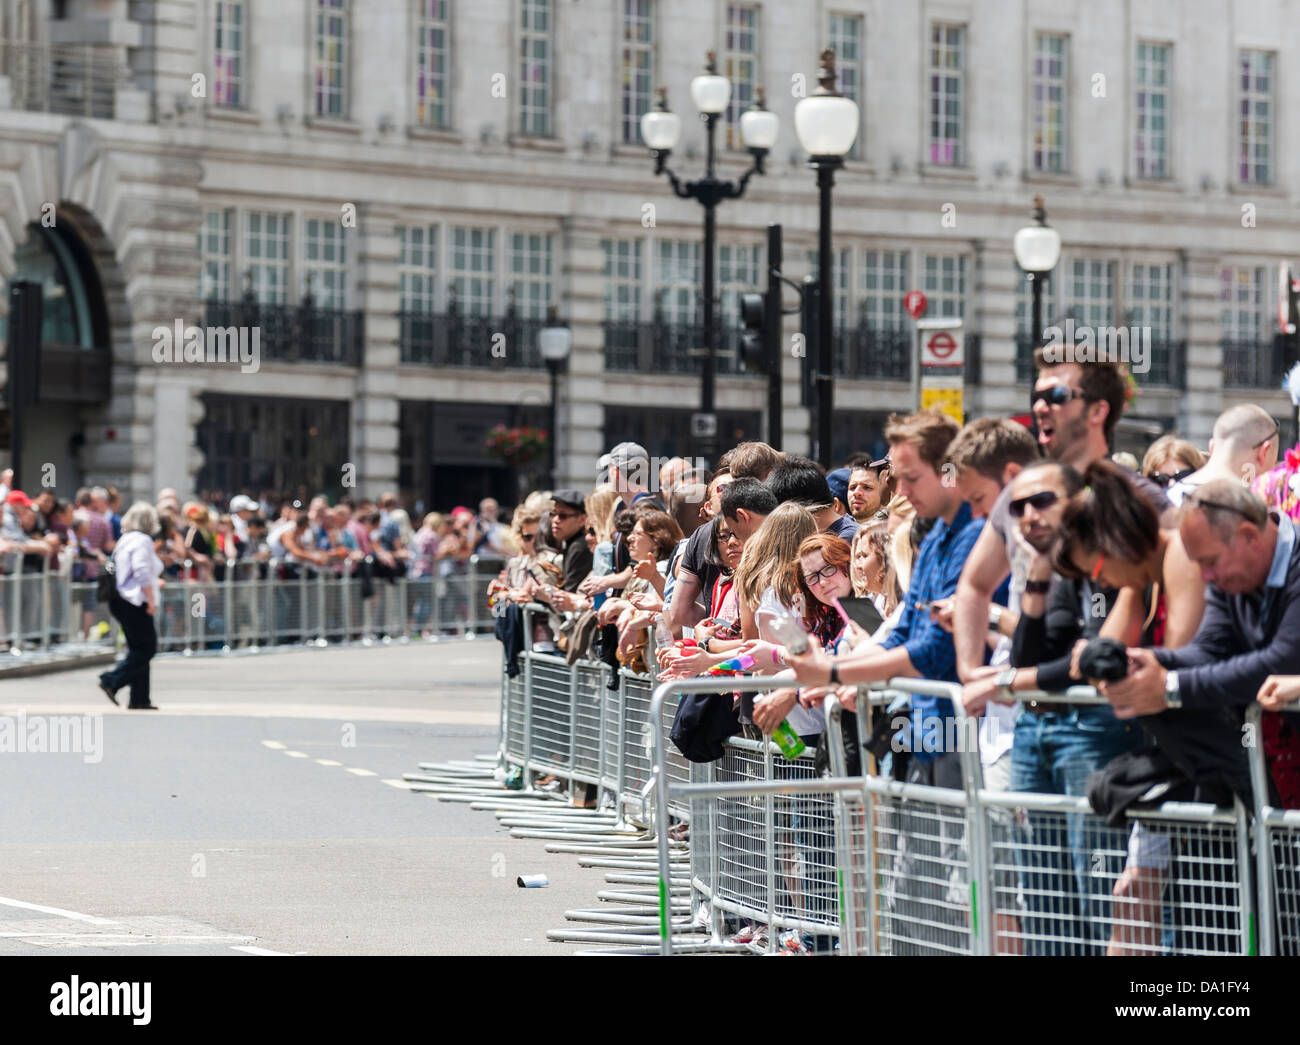 Crowds gathering to watch the London Pride parade. - Stock Image